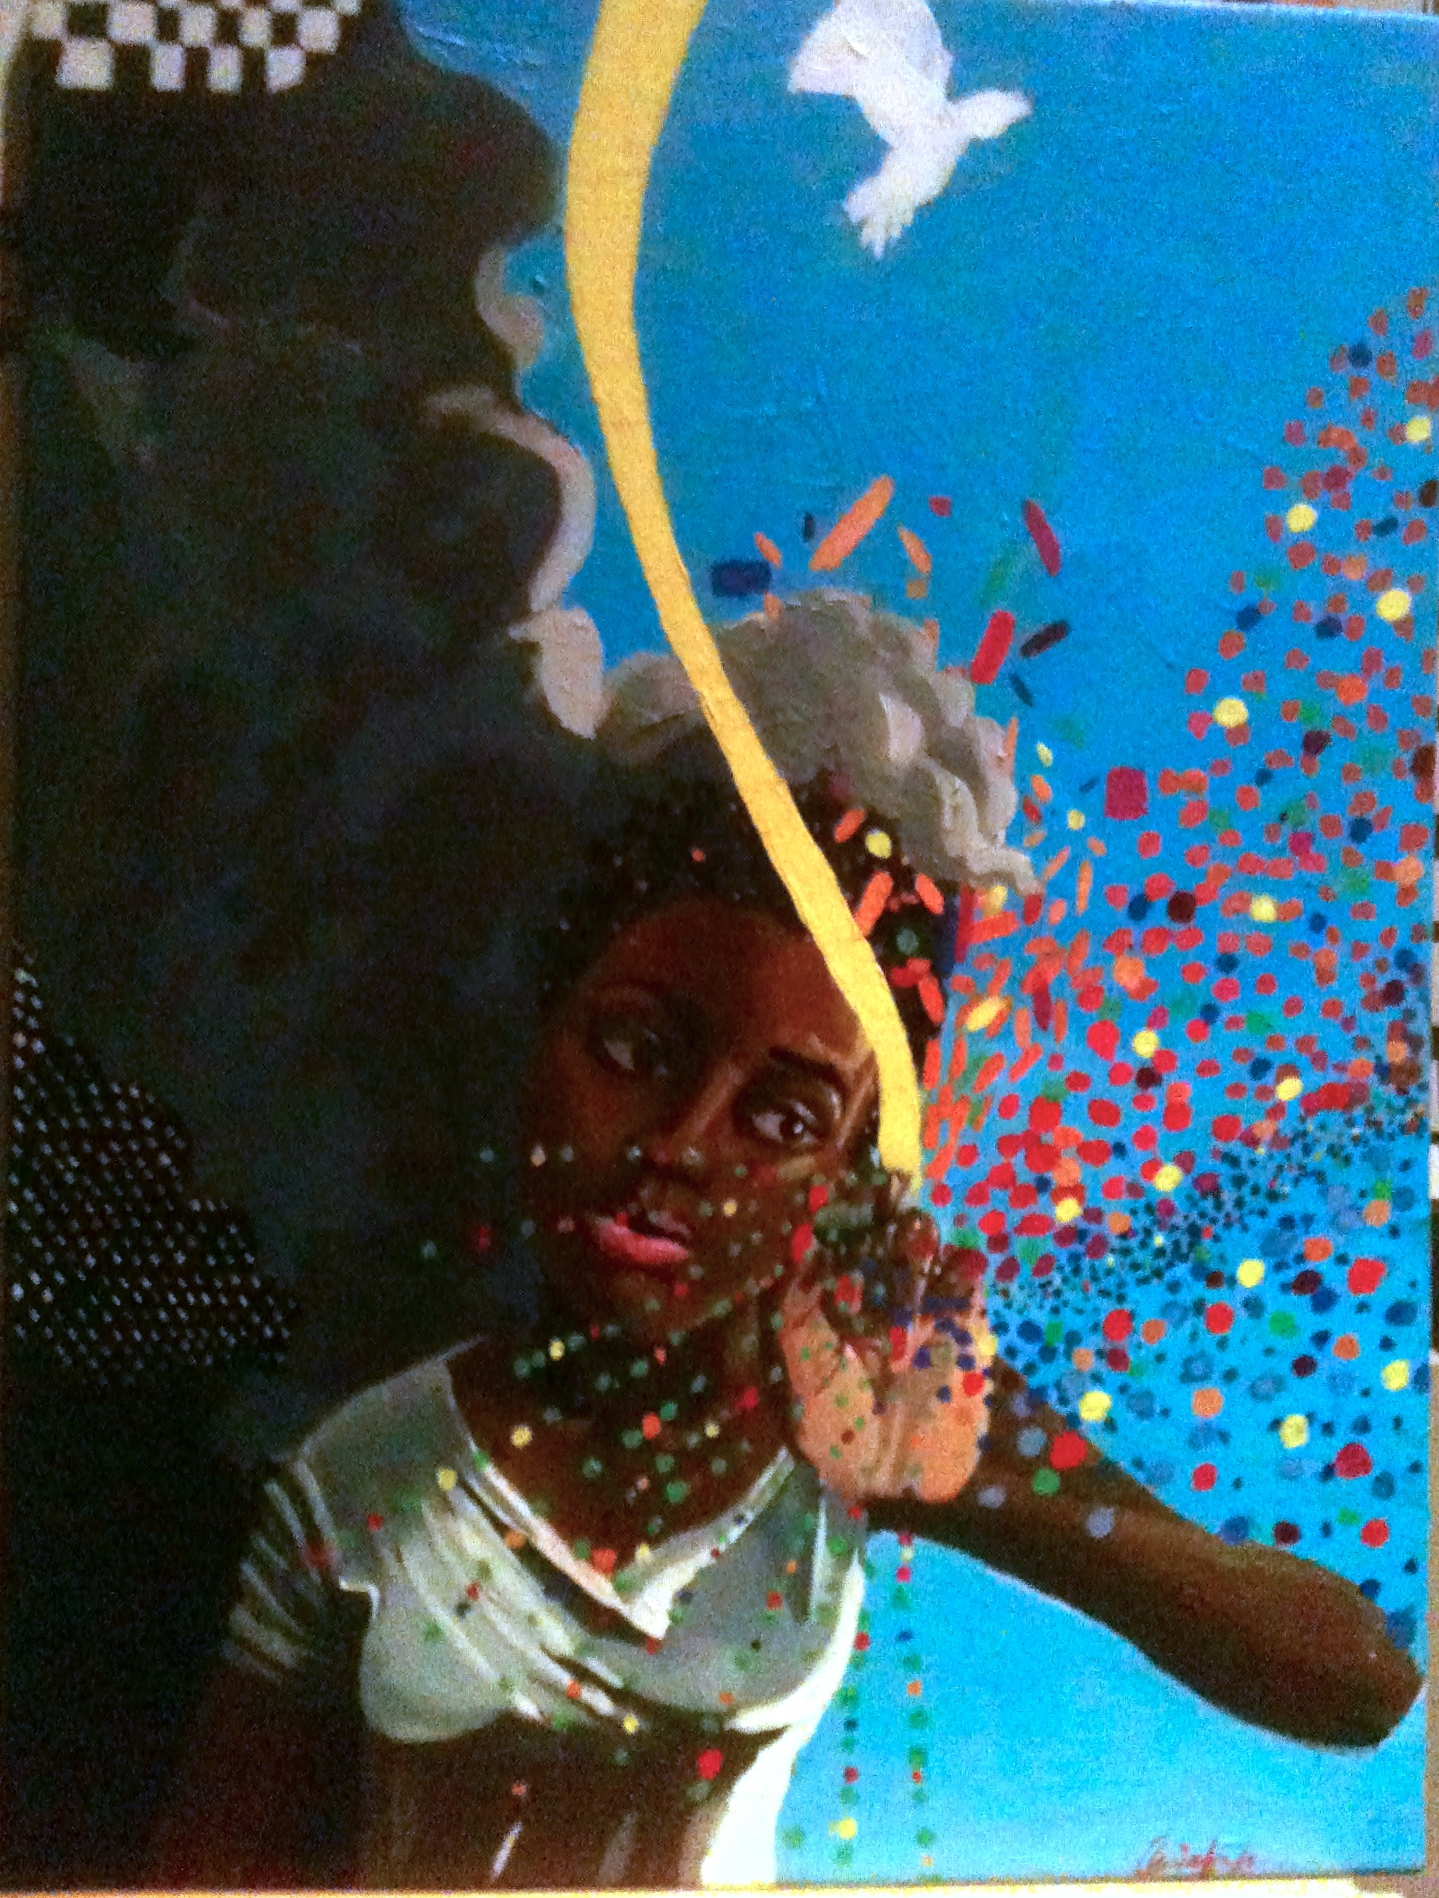 Aanisah Hinds The Painter_Stax_DRAFT ONLY.JPG